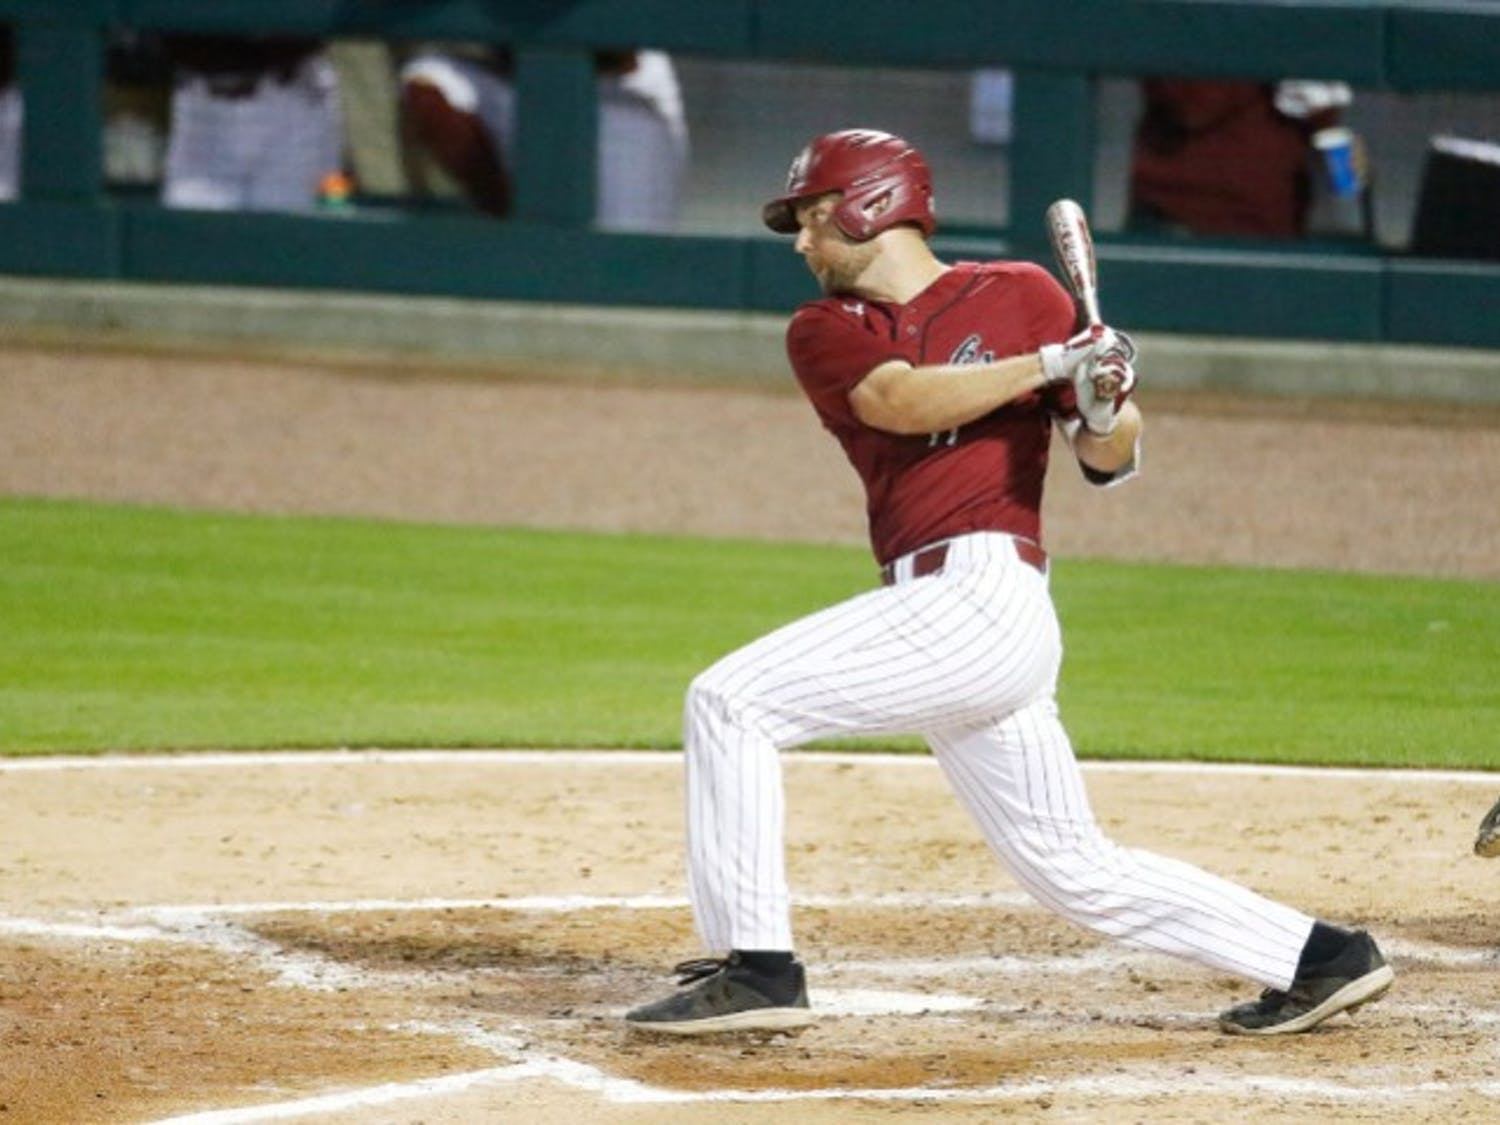 Senior right fielder Andrew Eyster swings at a pitch during Tuesday's game against UNC. The Gamecocks fell to the Tar Heels 3-2 in 10 innings.